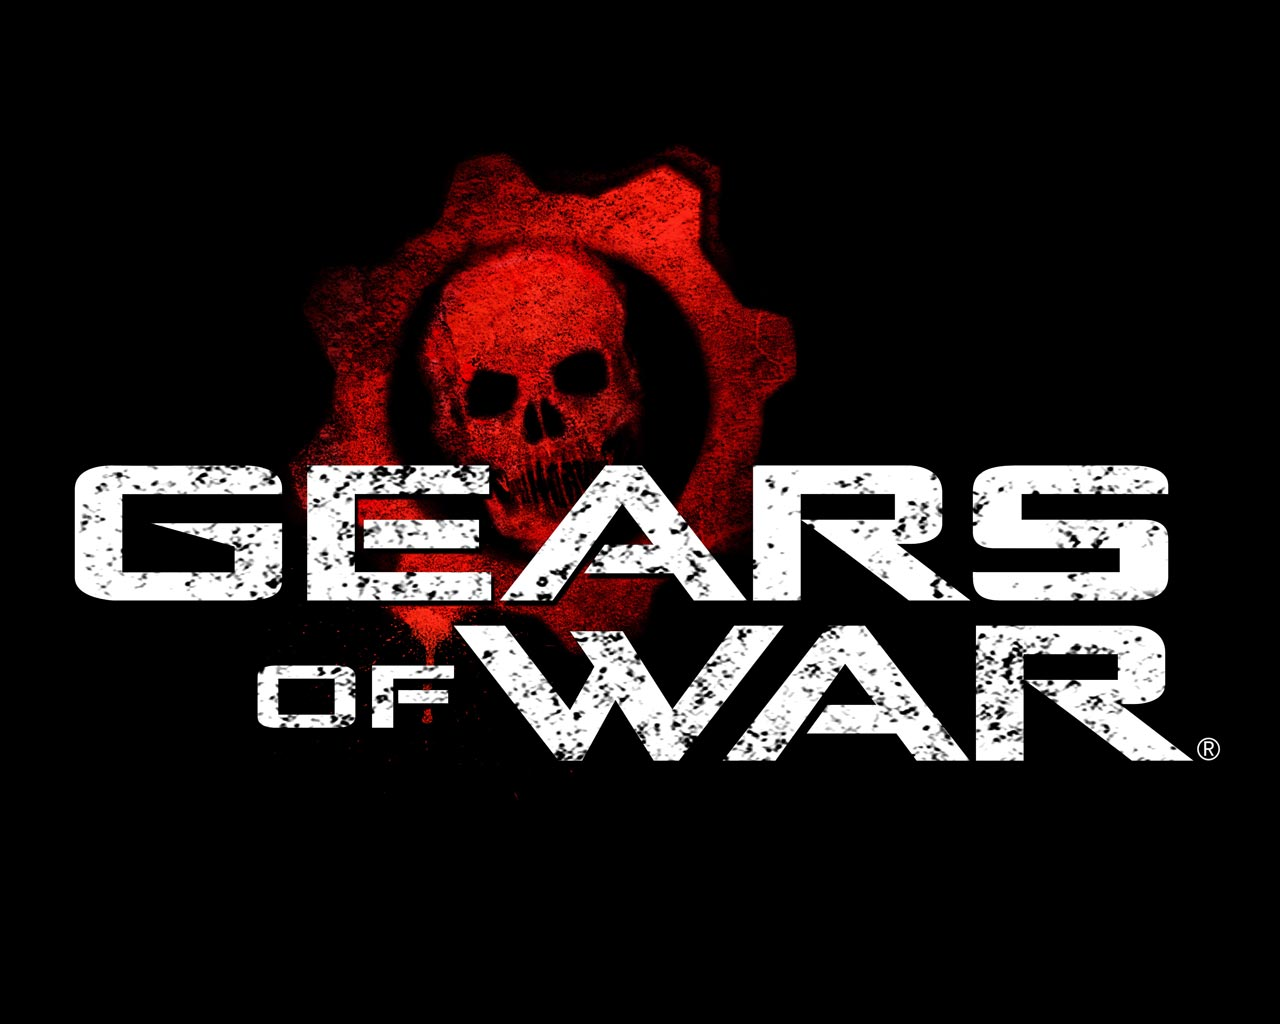 E3 2015: Gears of War 4 shown for the first time, remake of the original coming this year